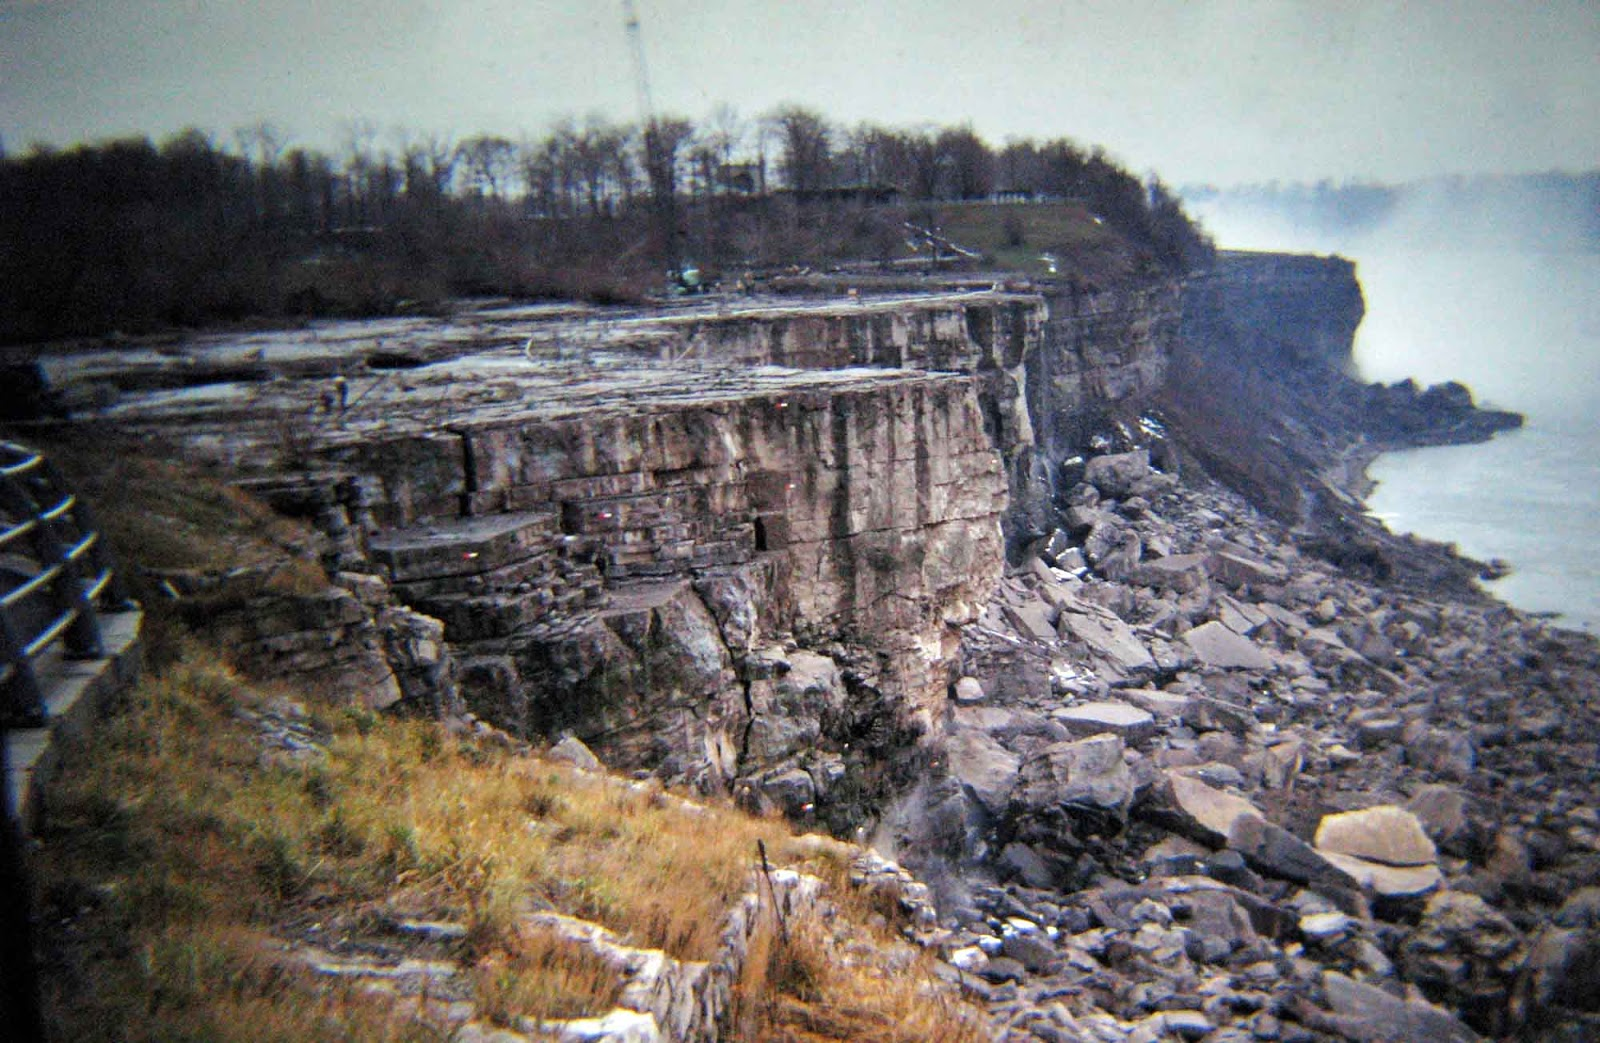 niagara_falls_without_water_1969_4.jpg